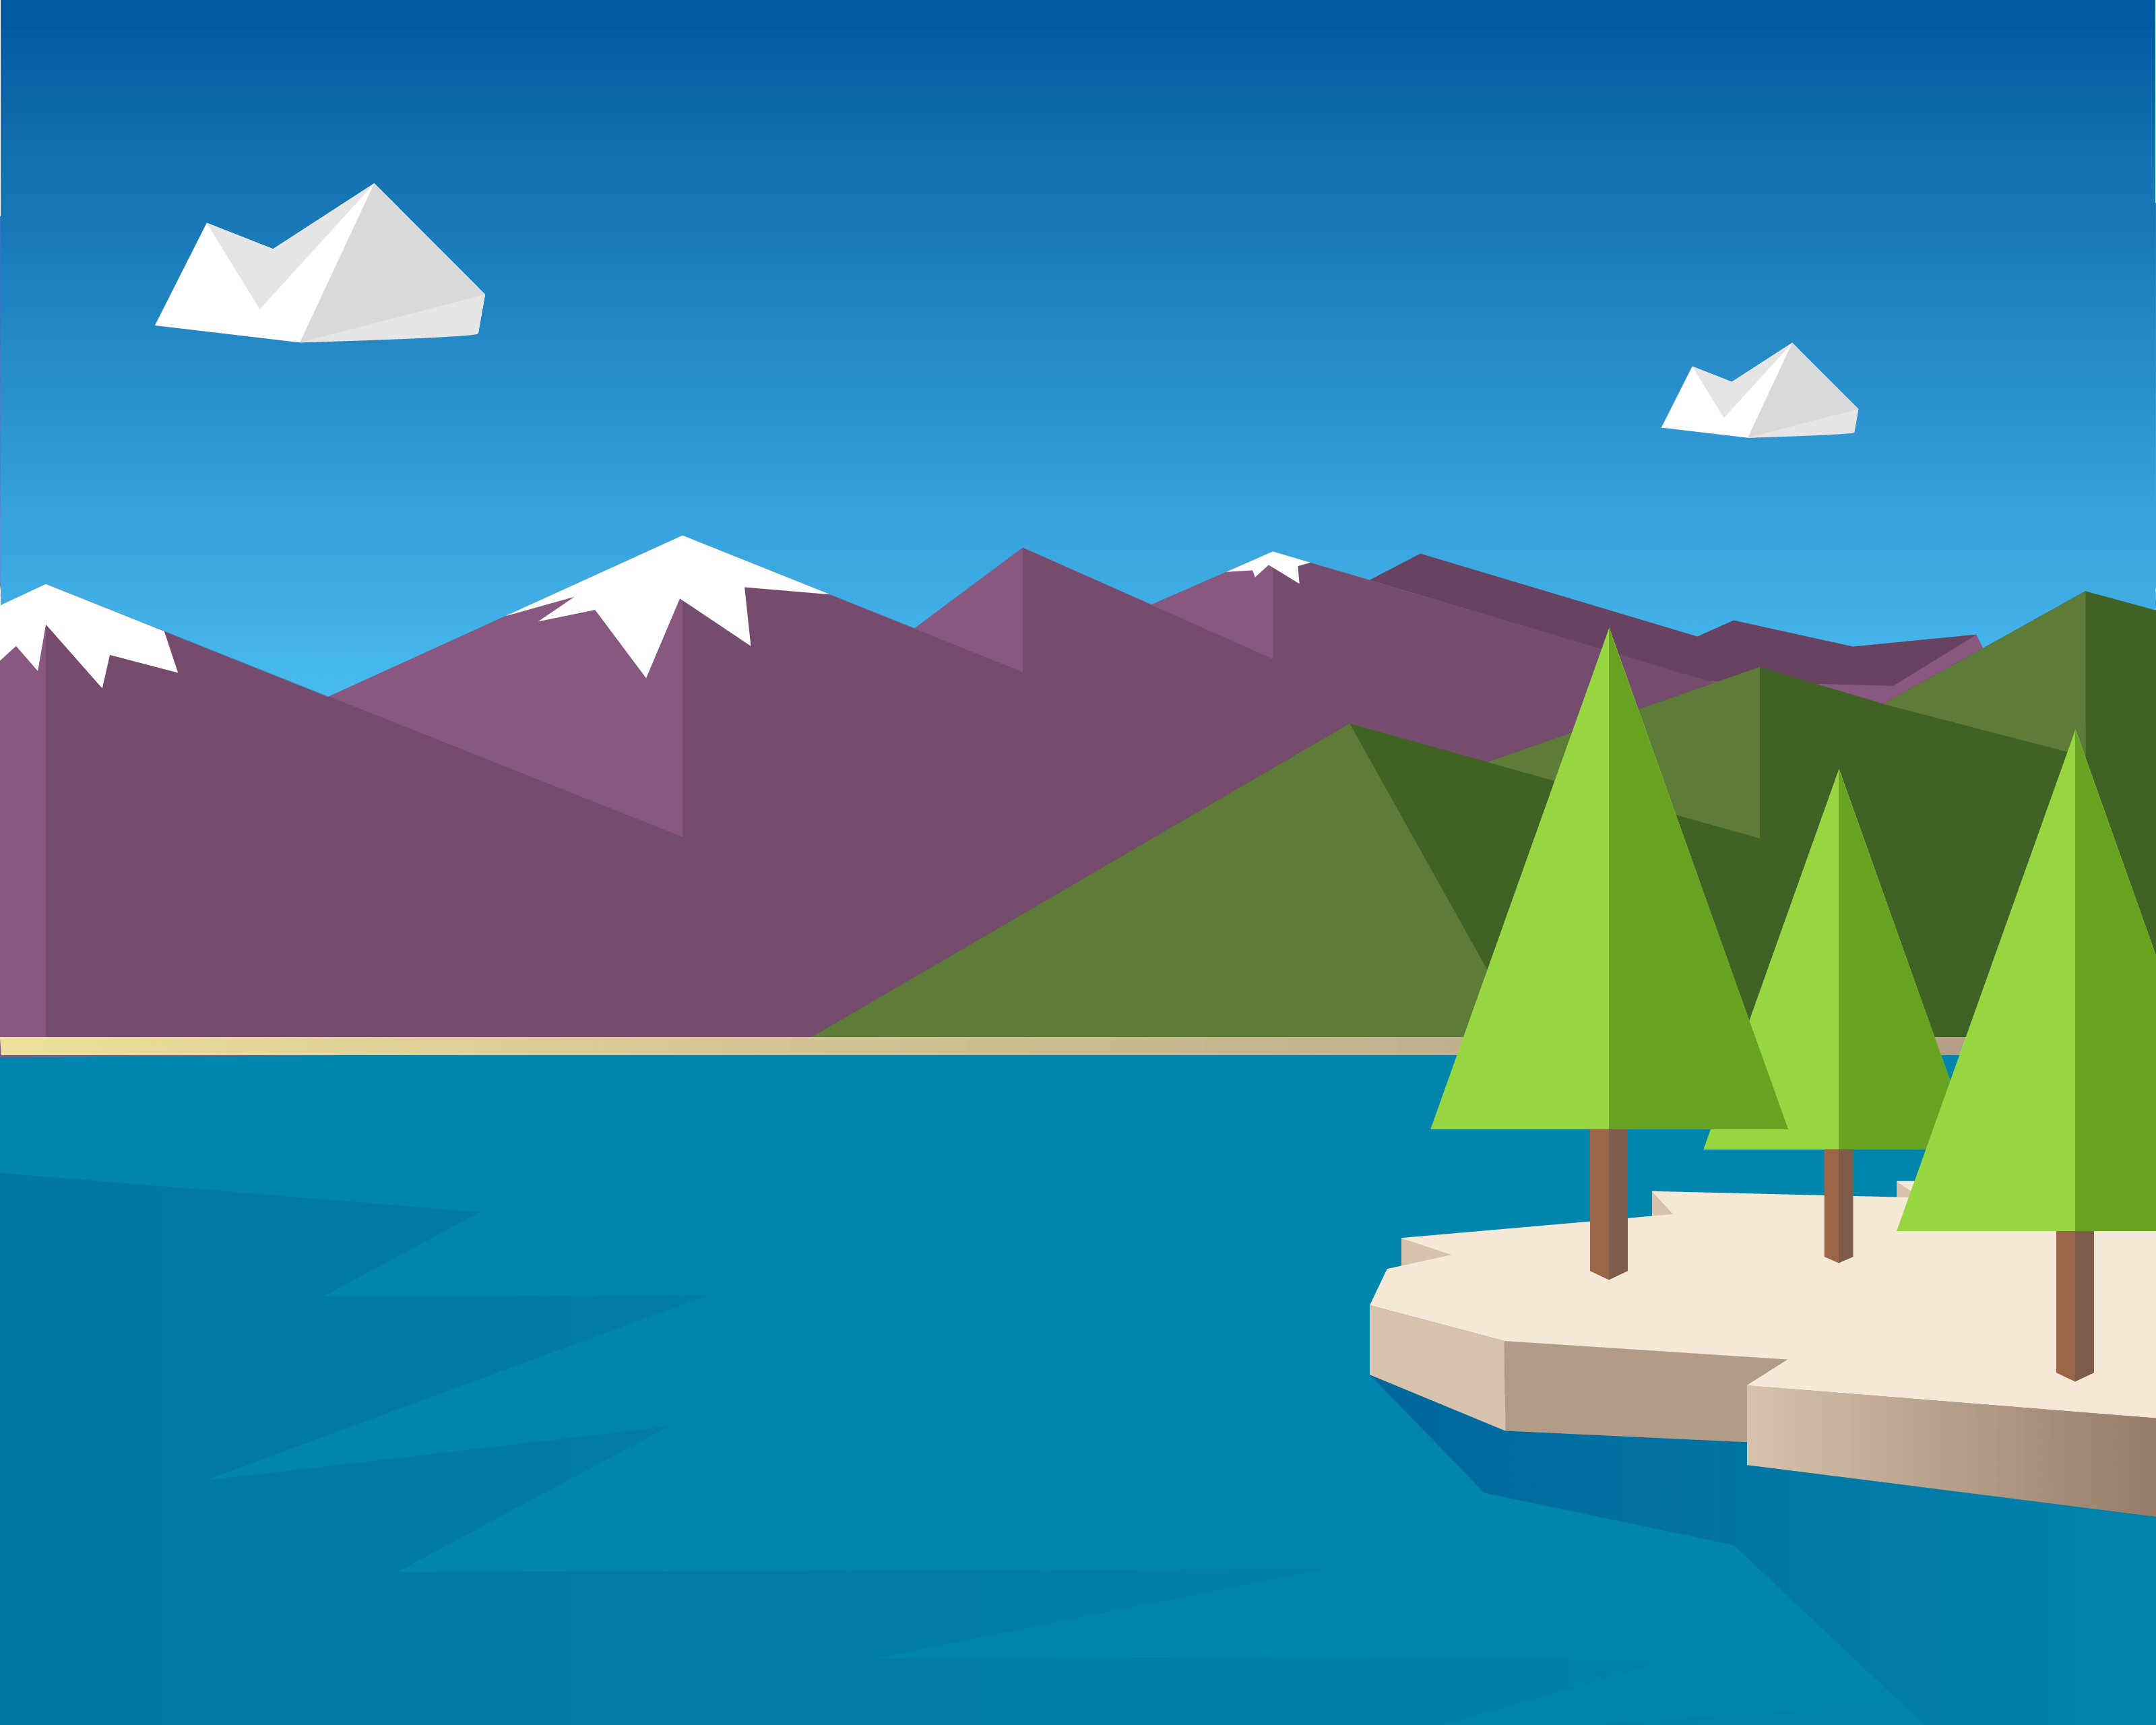 Wallpaper Wednesday: Animated Landscapes